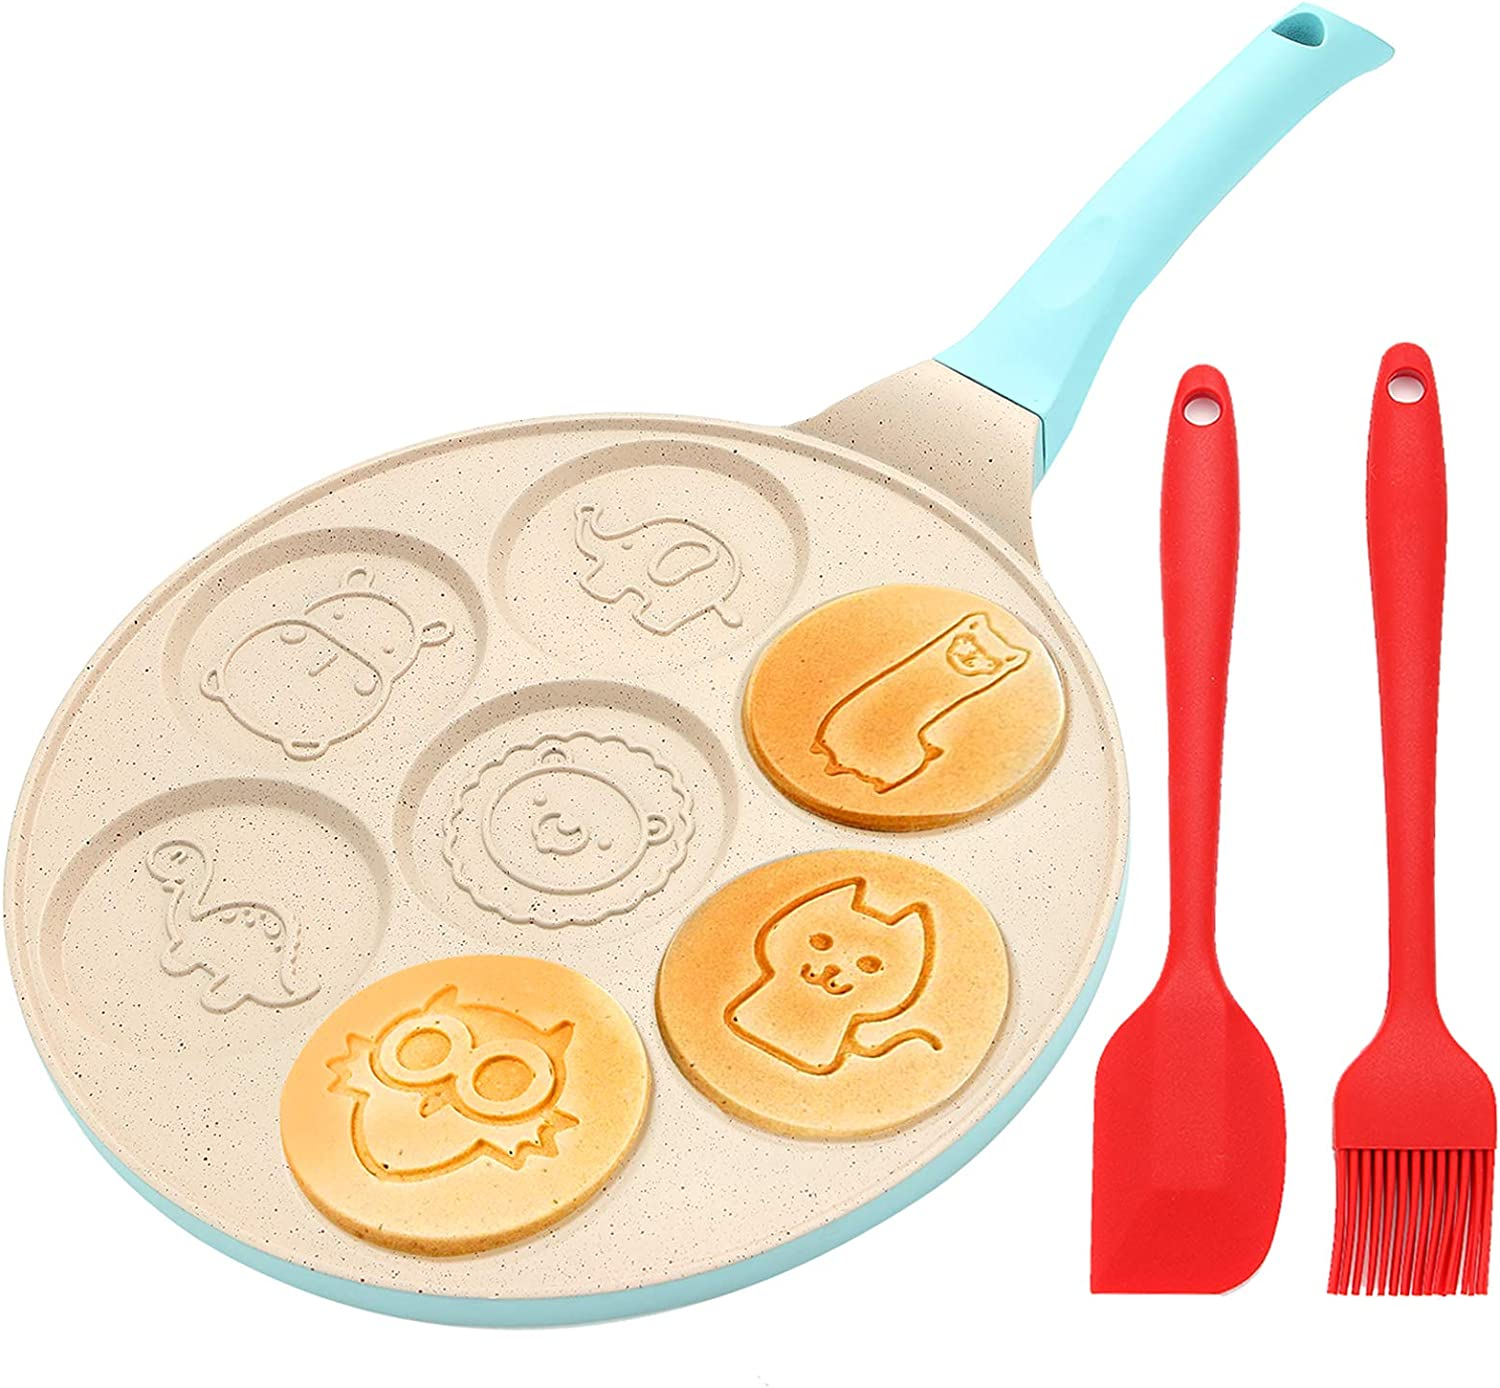 Kids Pancake Maker Pan, 7-Cup Animal Pancake Mold, Nonstick Grill Pan, Mini Blini Pancakes Mold for Children, 10 Inch, With Silicone spatula & Silicone Brush